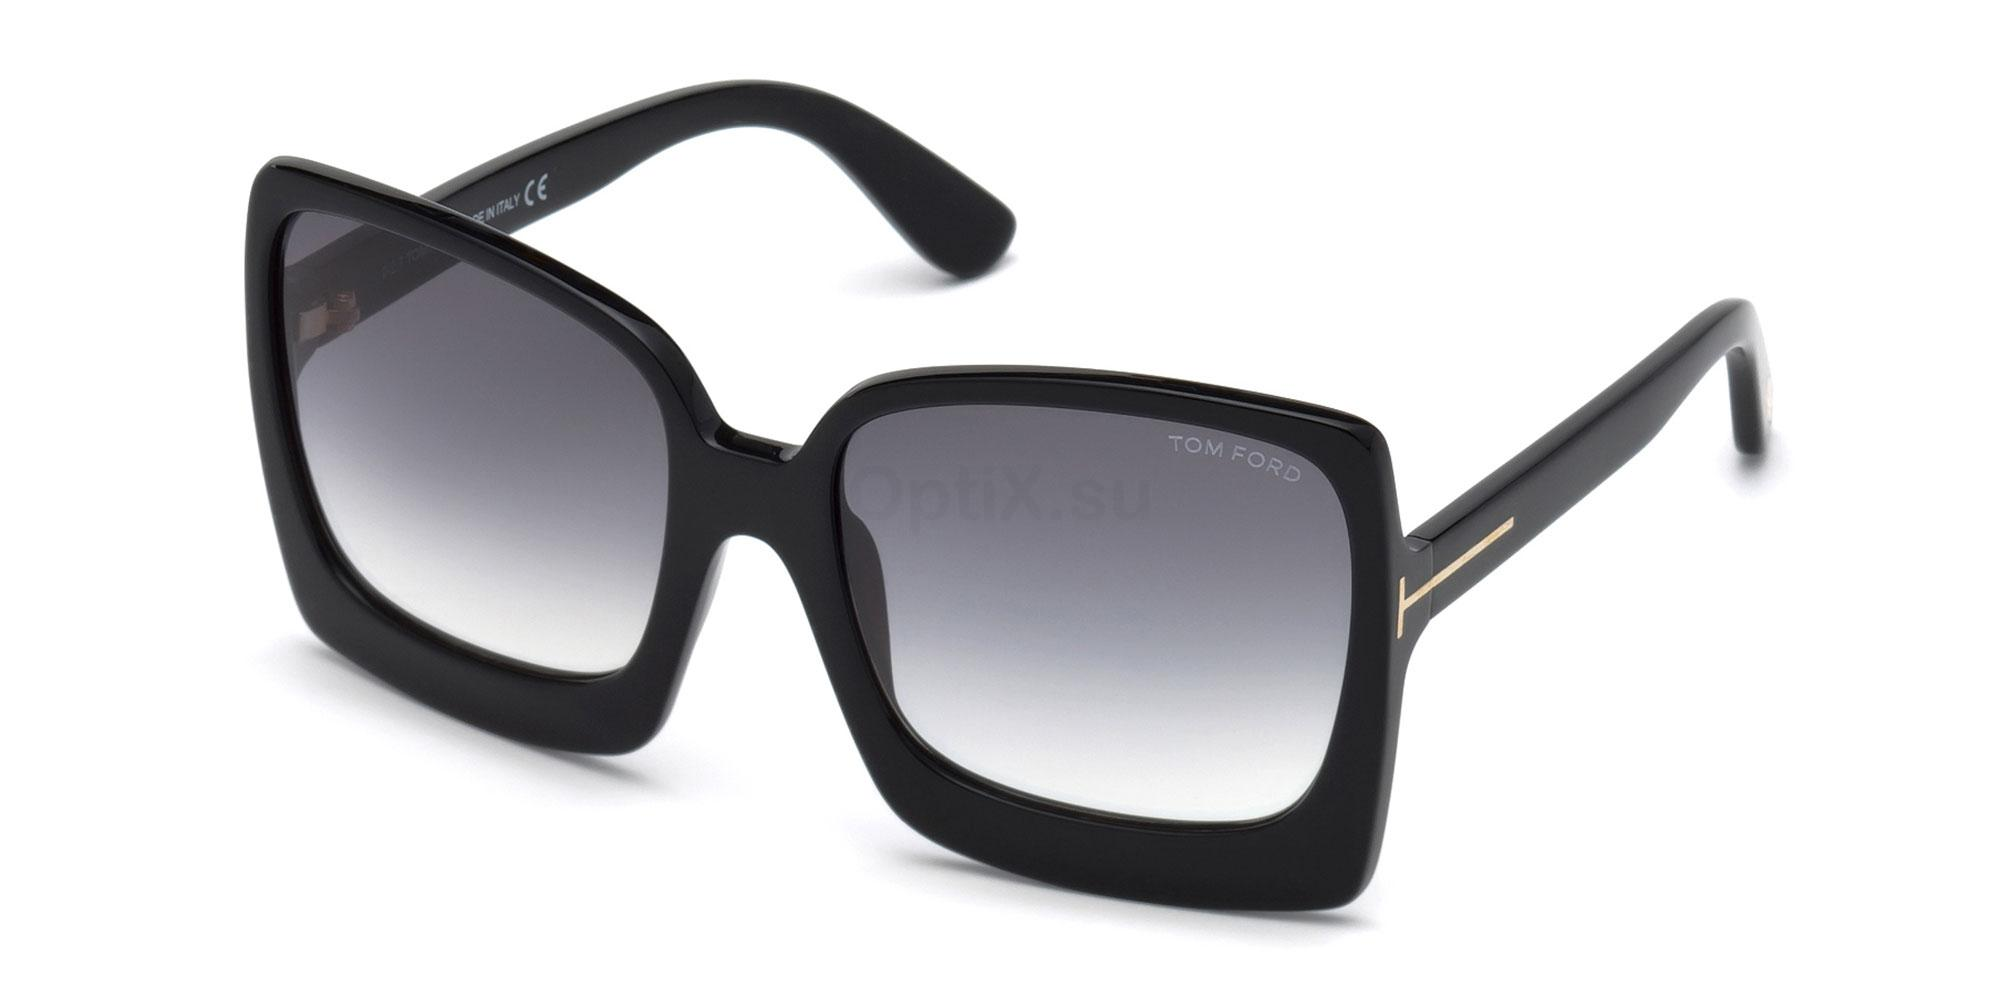 01B FT0617 Sunglasses, Tom Ford